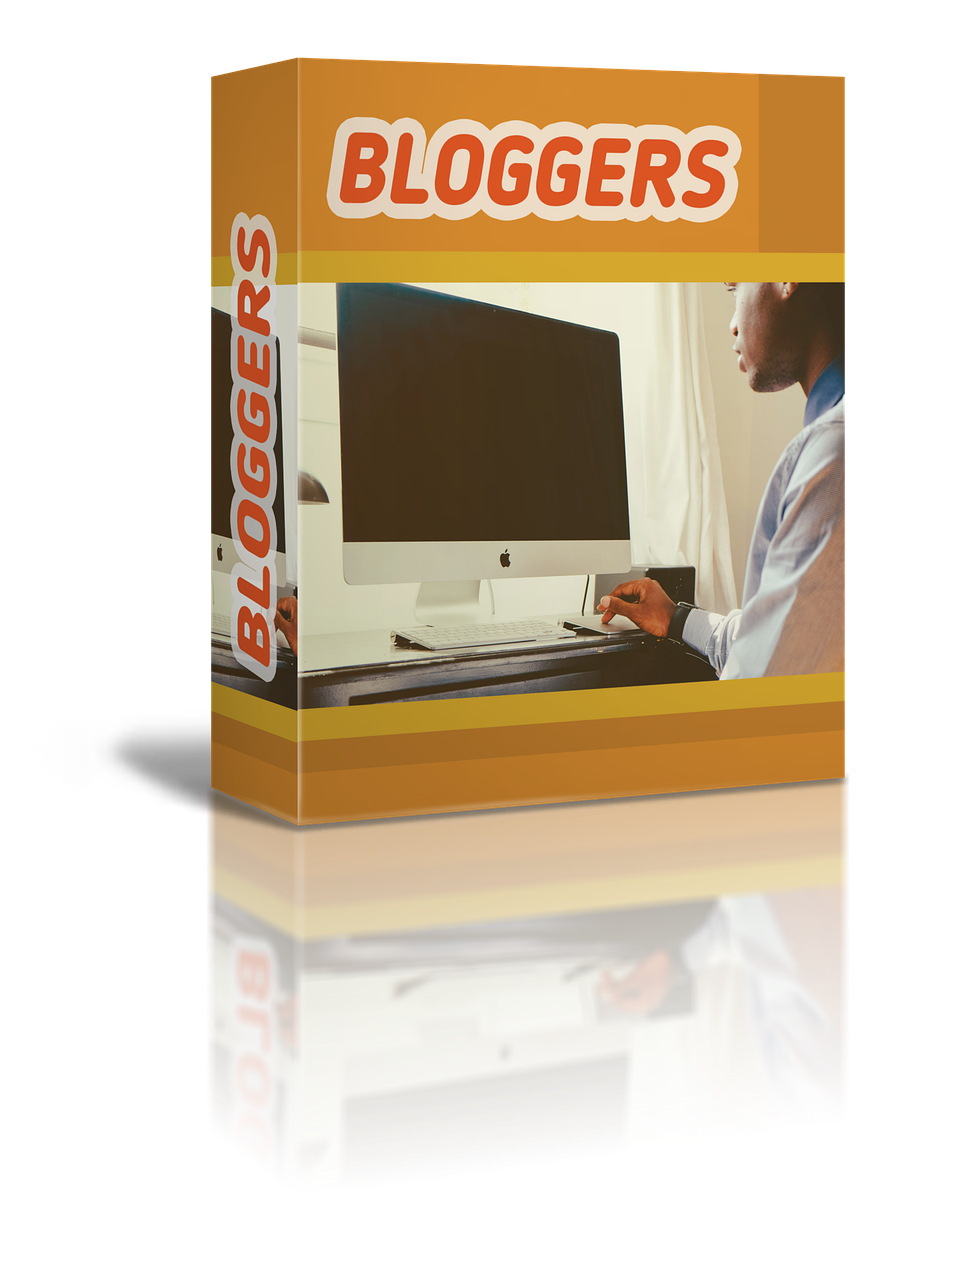 bloggers 3d software free photo